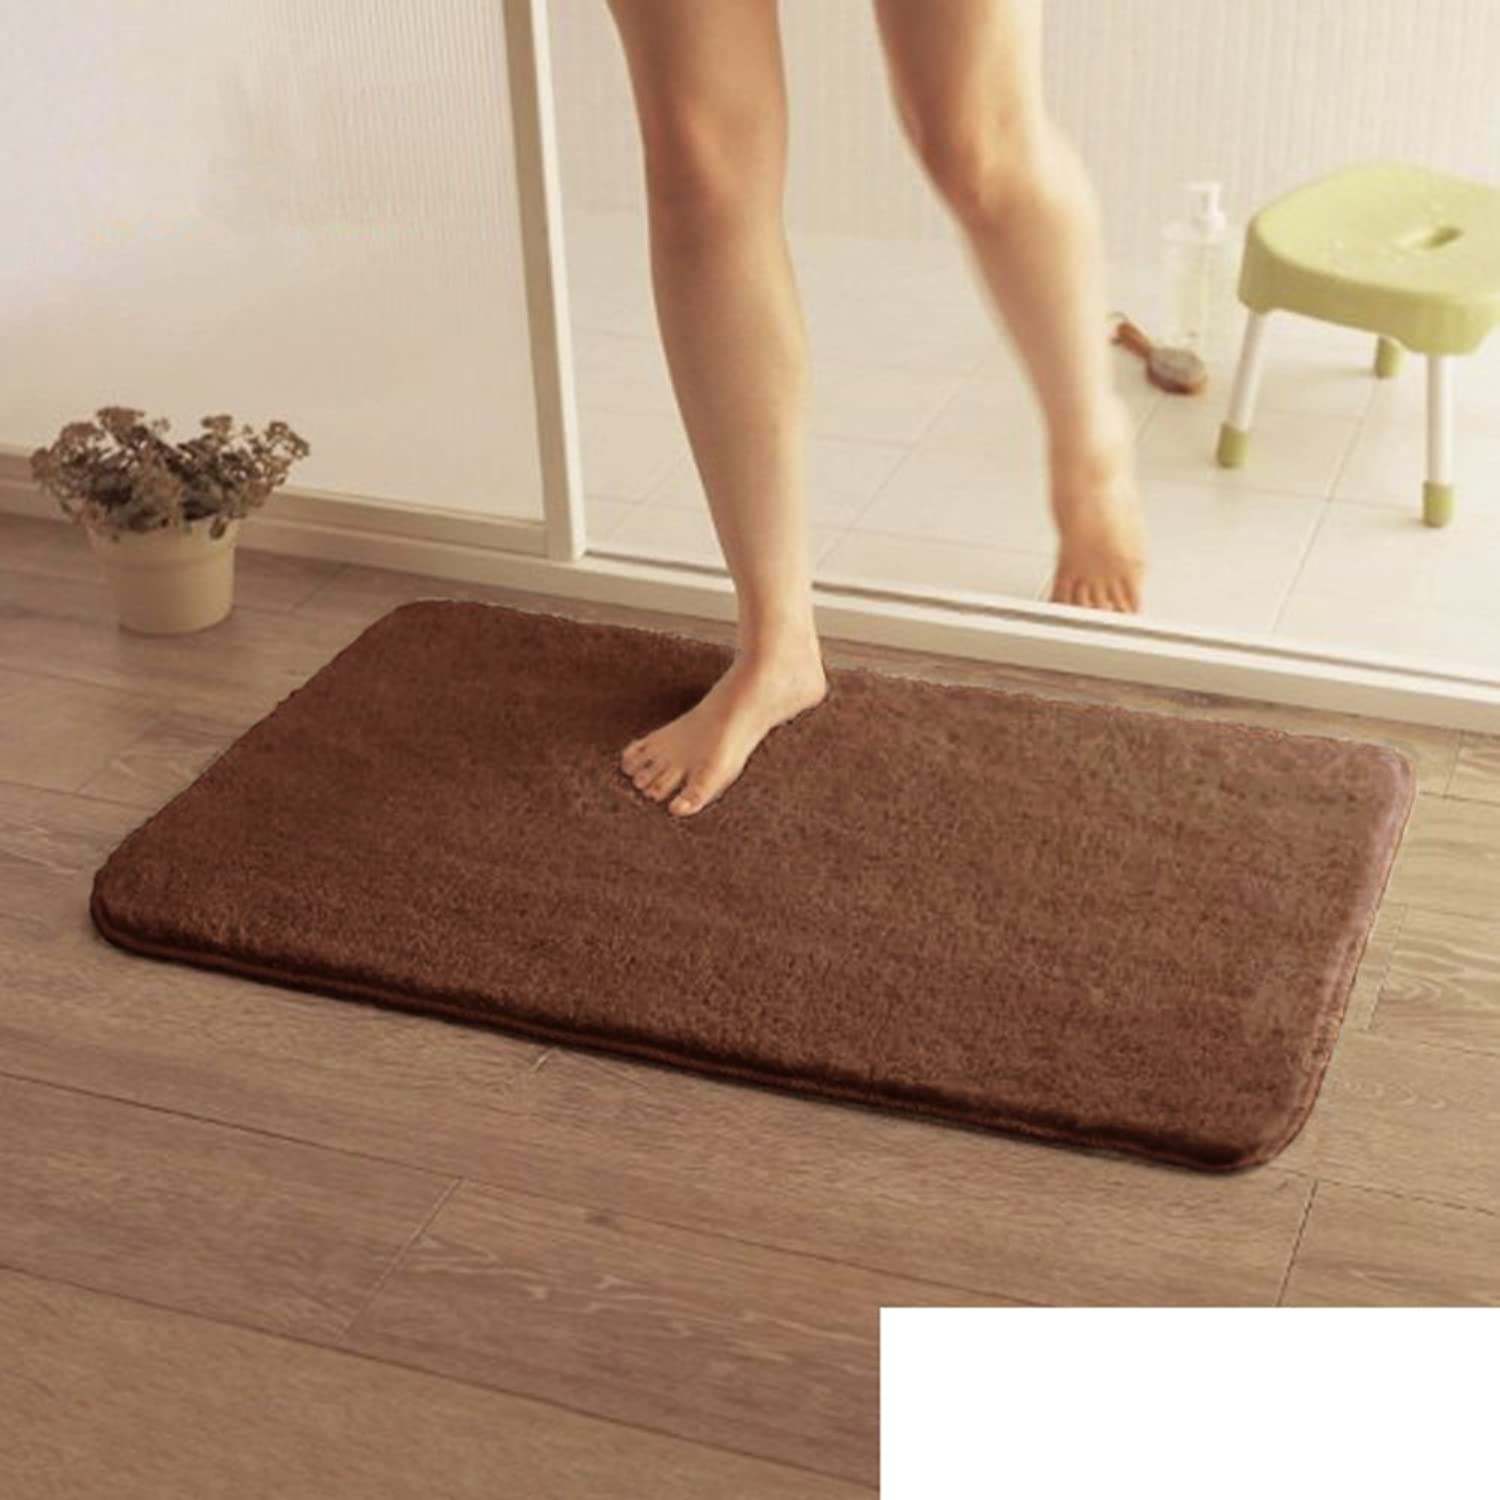 Mats Mat Foyer Bathroom Absorbent Suede Rubbing Mat Bathroom Door Anti-Skid Mat-C 80x120cm(31x47inch)